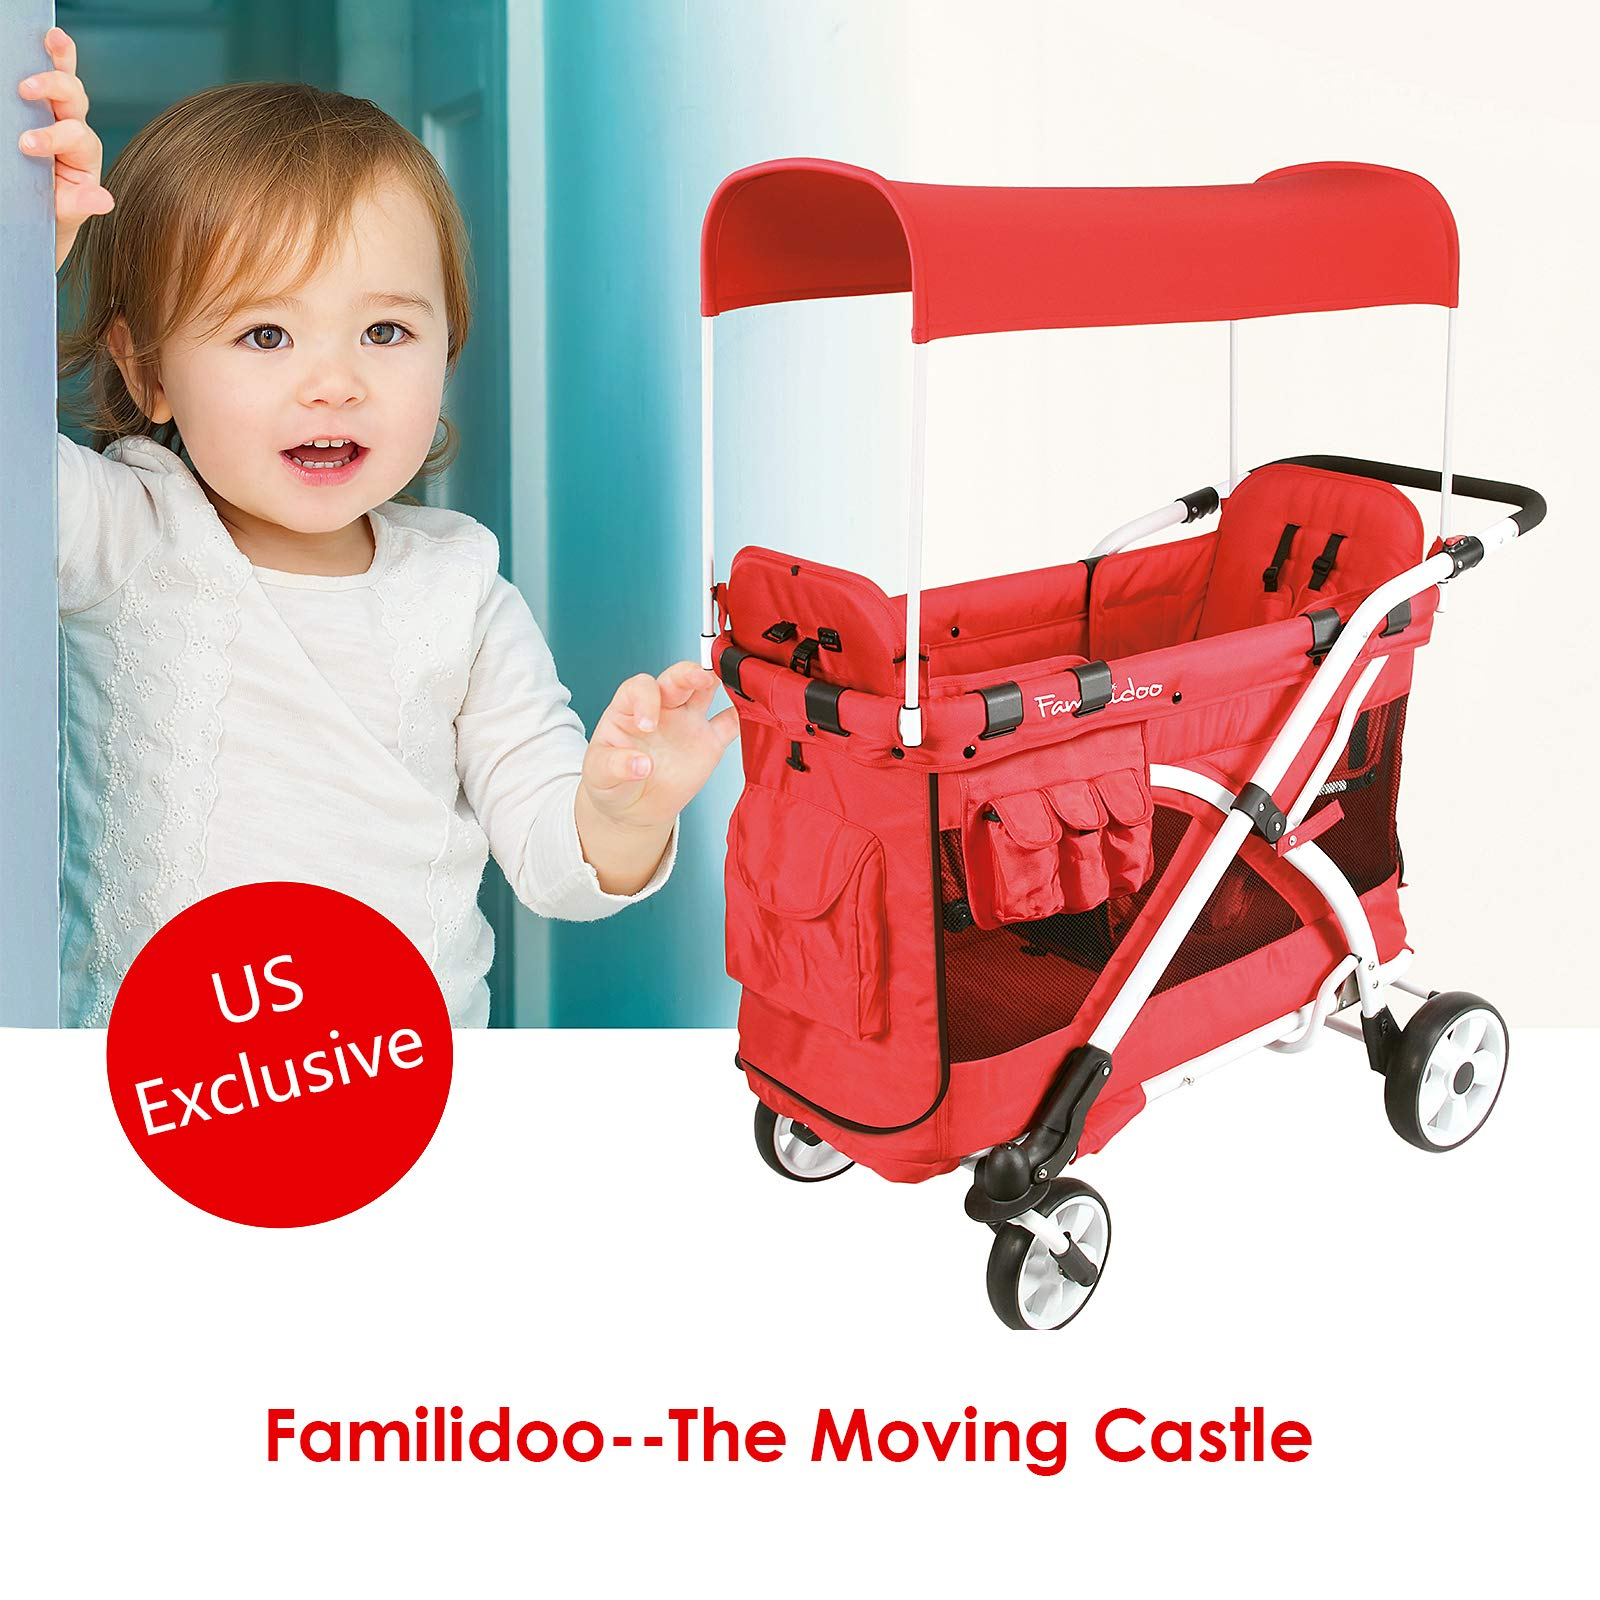 Familidoo Multi-Purpose 6 in 1 Large Twin Size Toddler Baby Folding Stroller Chariot Wagon, Red by FAMILIDOO (Image #2)